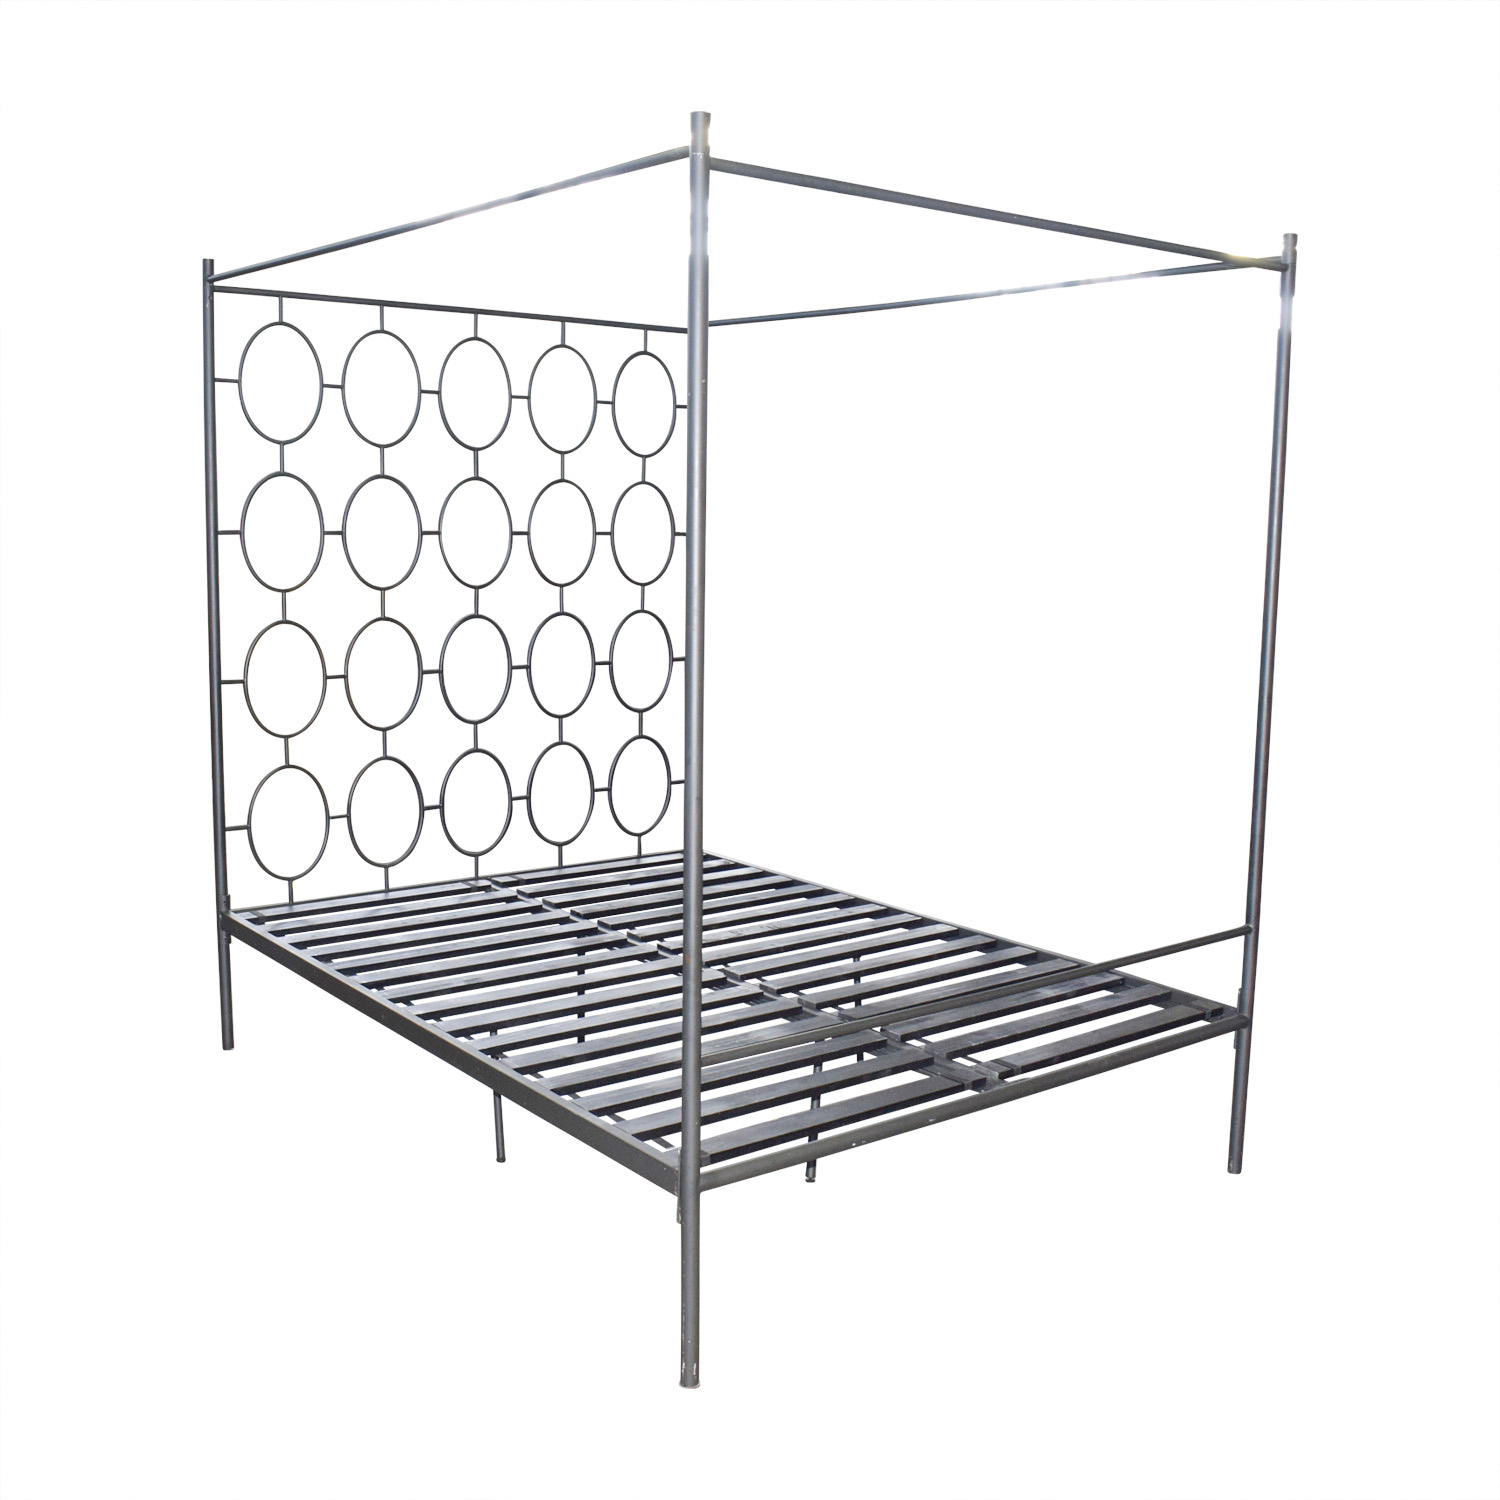 West Elm Geographic Canopy Queen Bed Frame / Beds